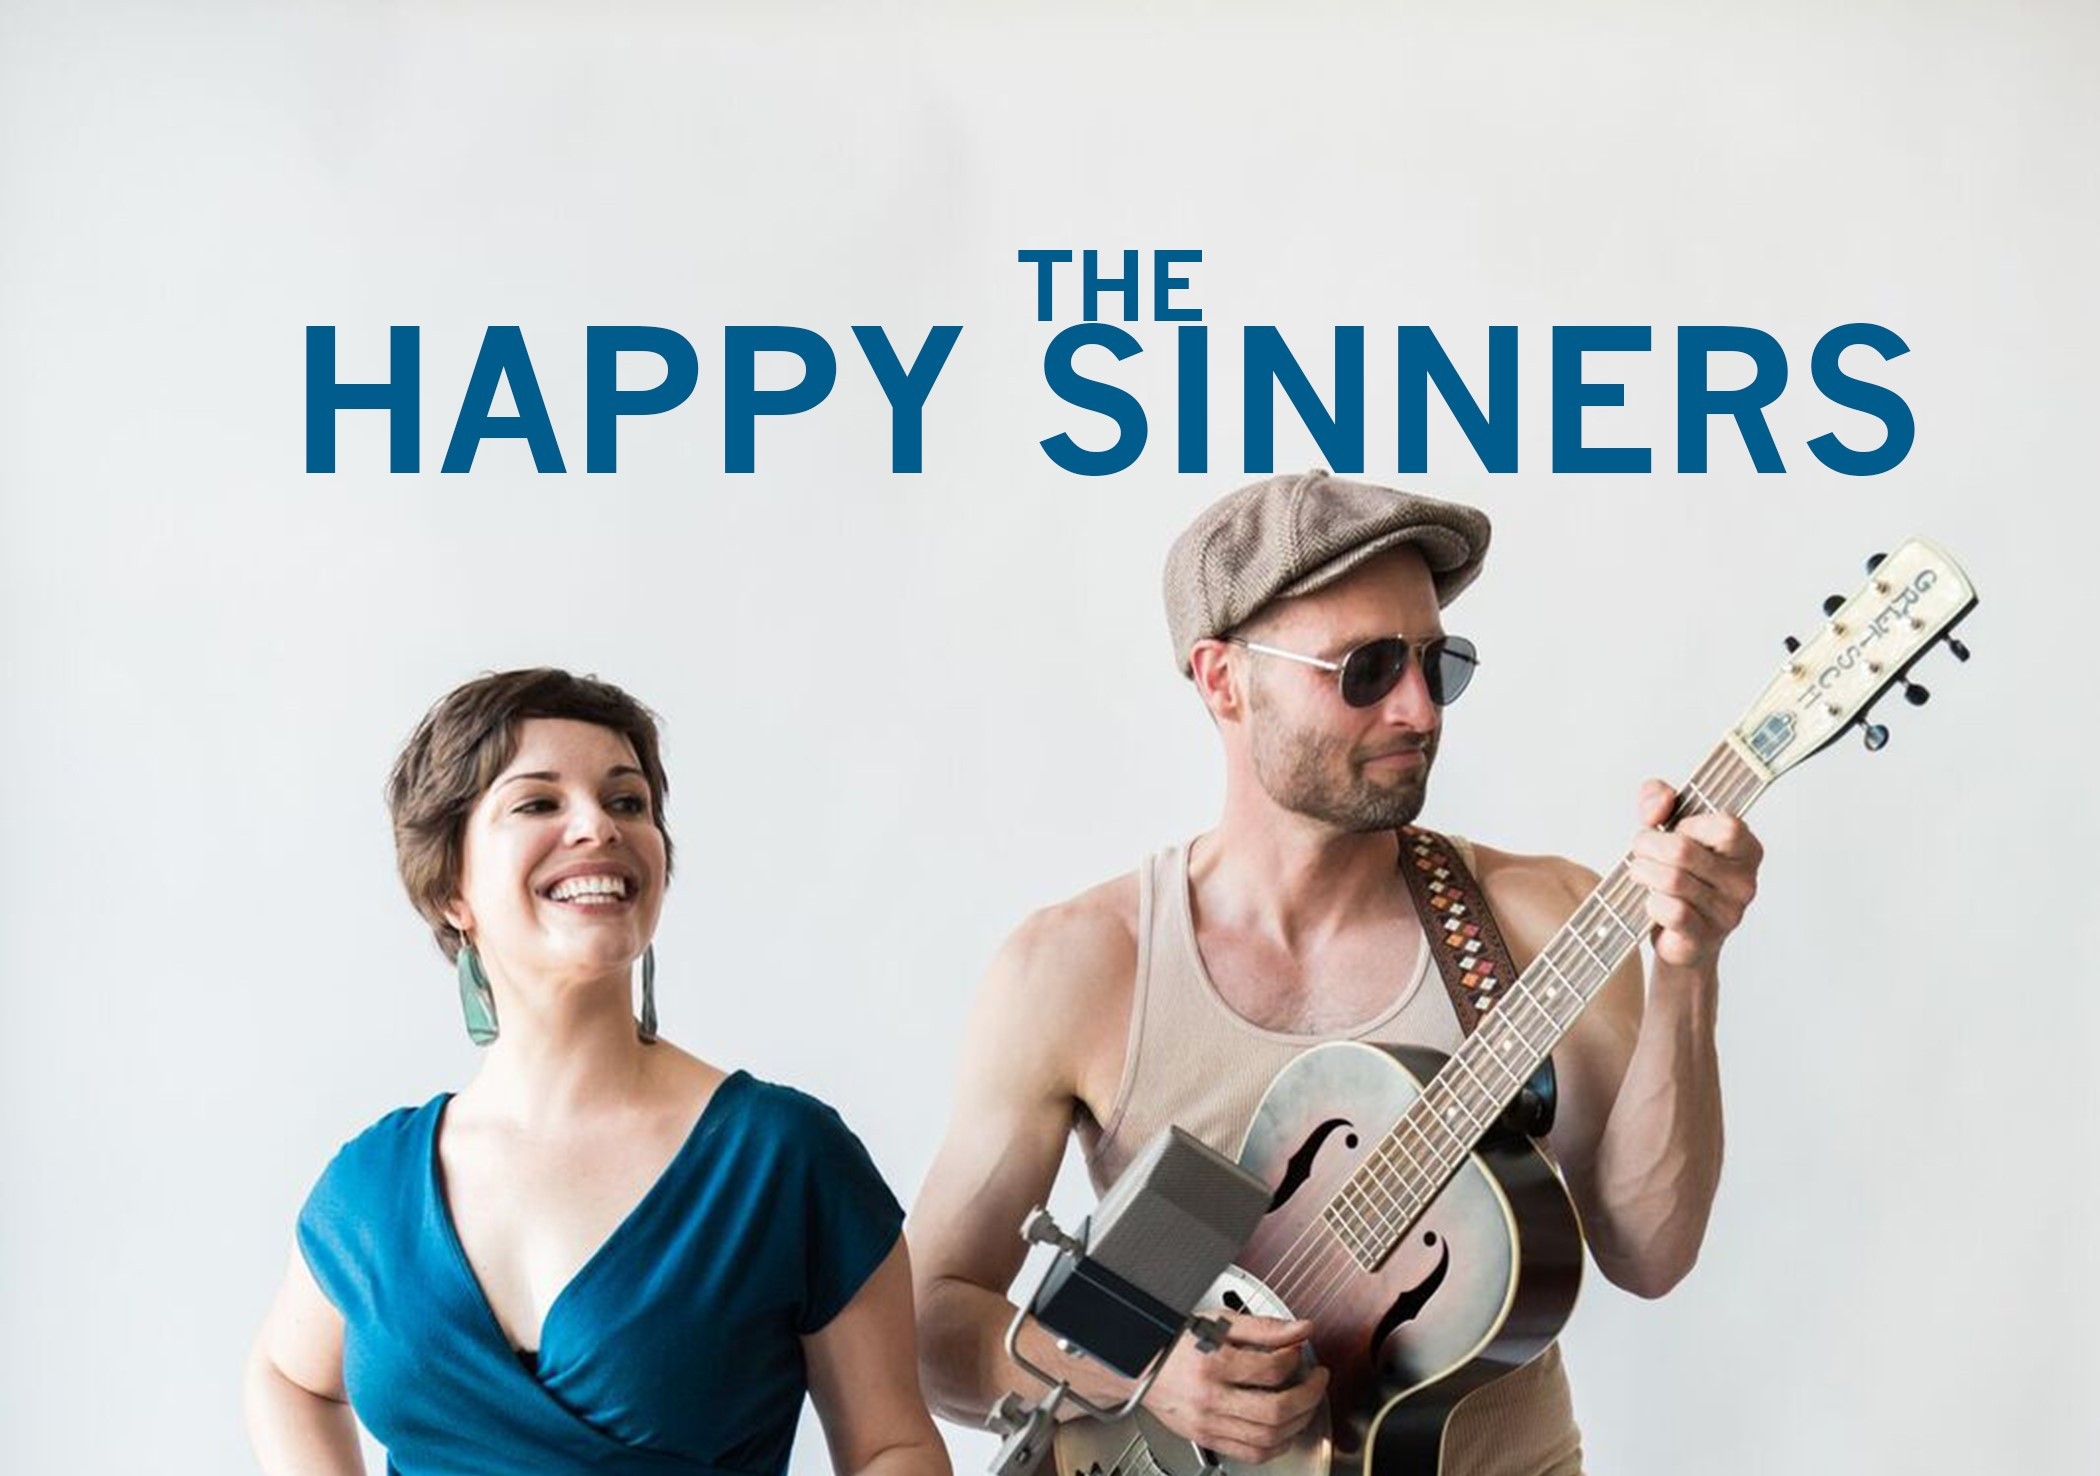 An evening with The Happy Sinners